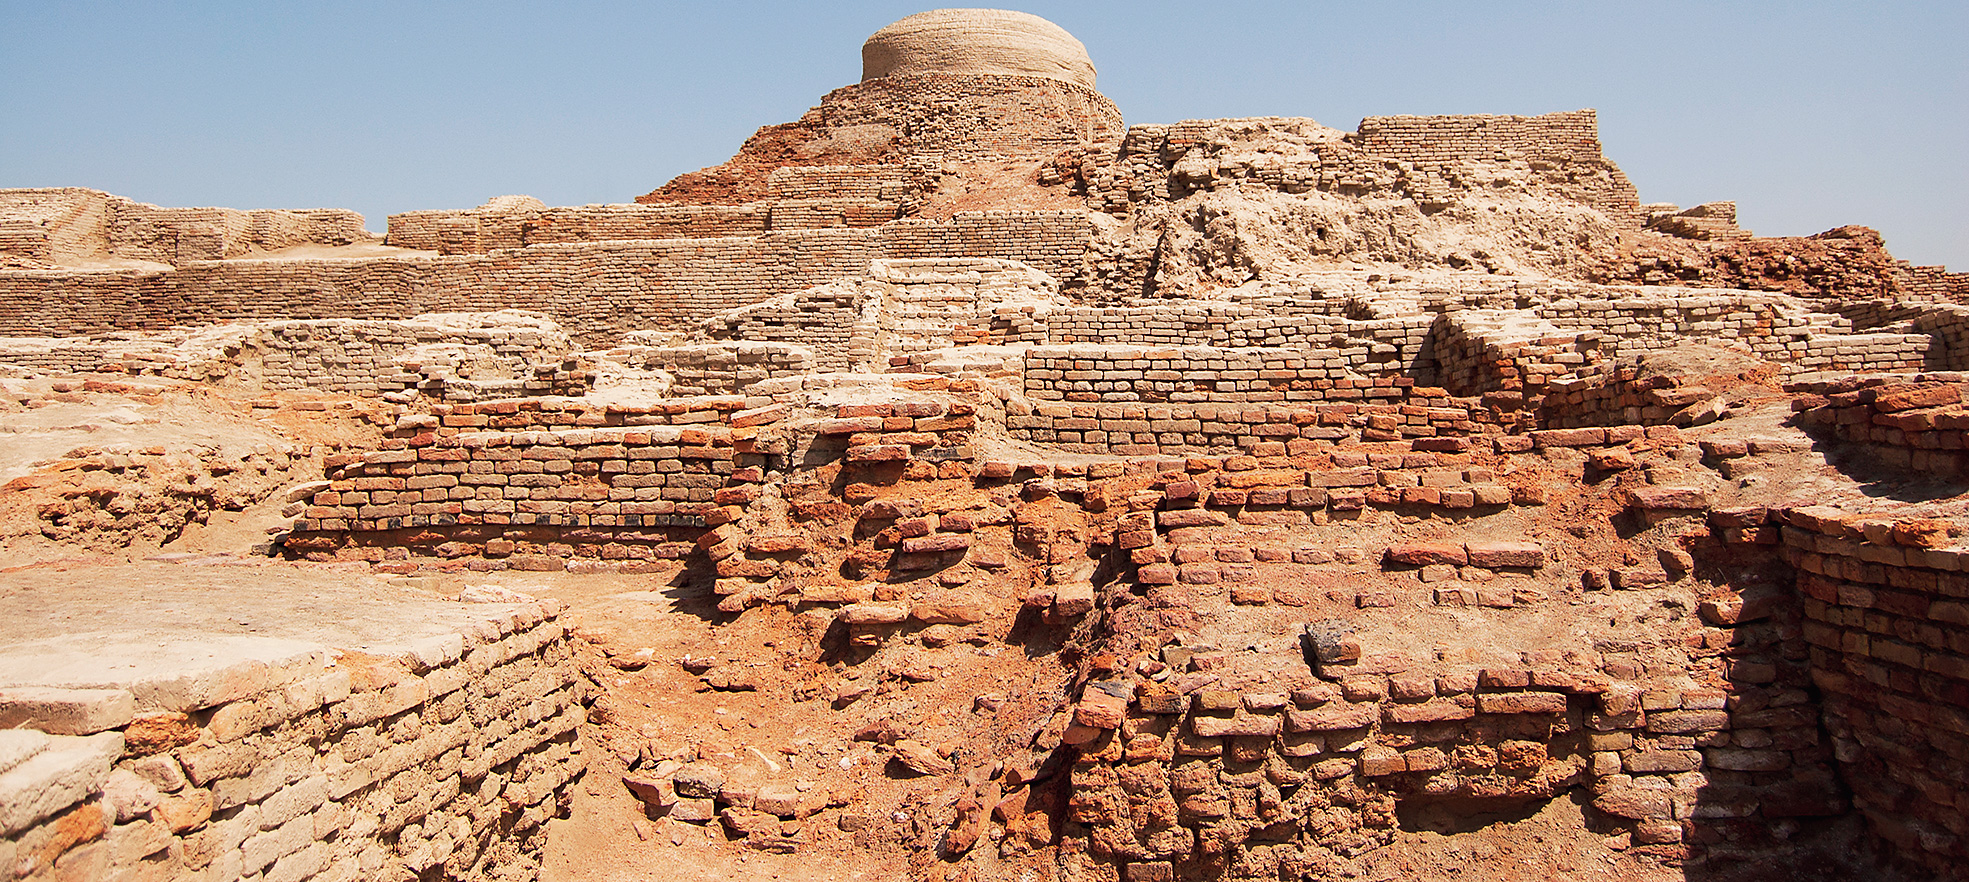 Mohenjo-daro, the second Harappan site to be excavated